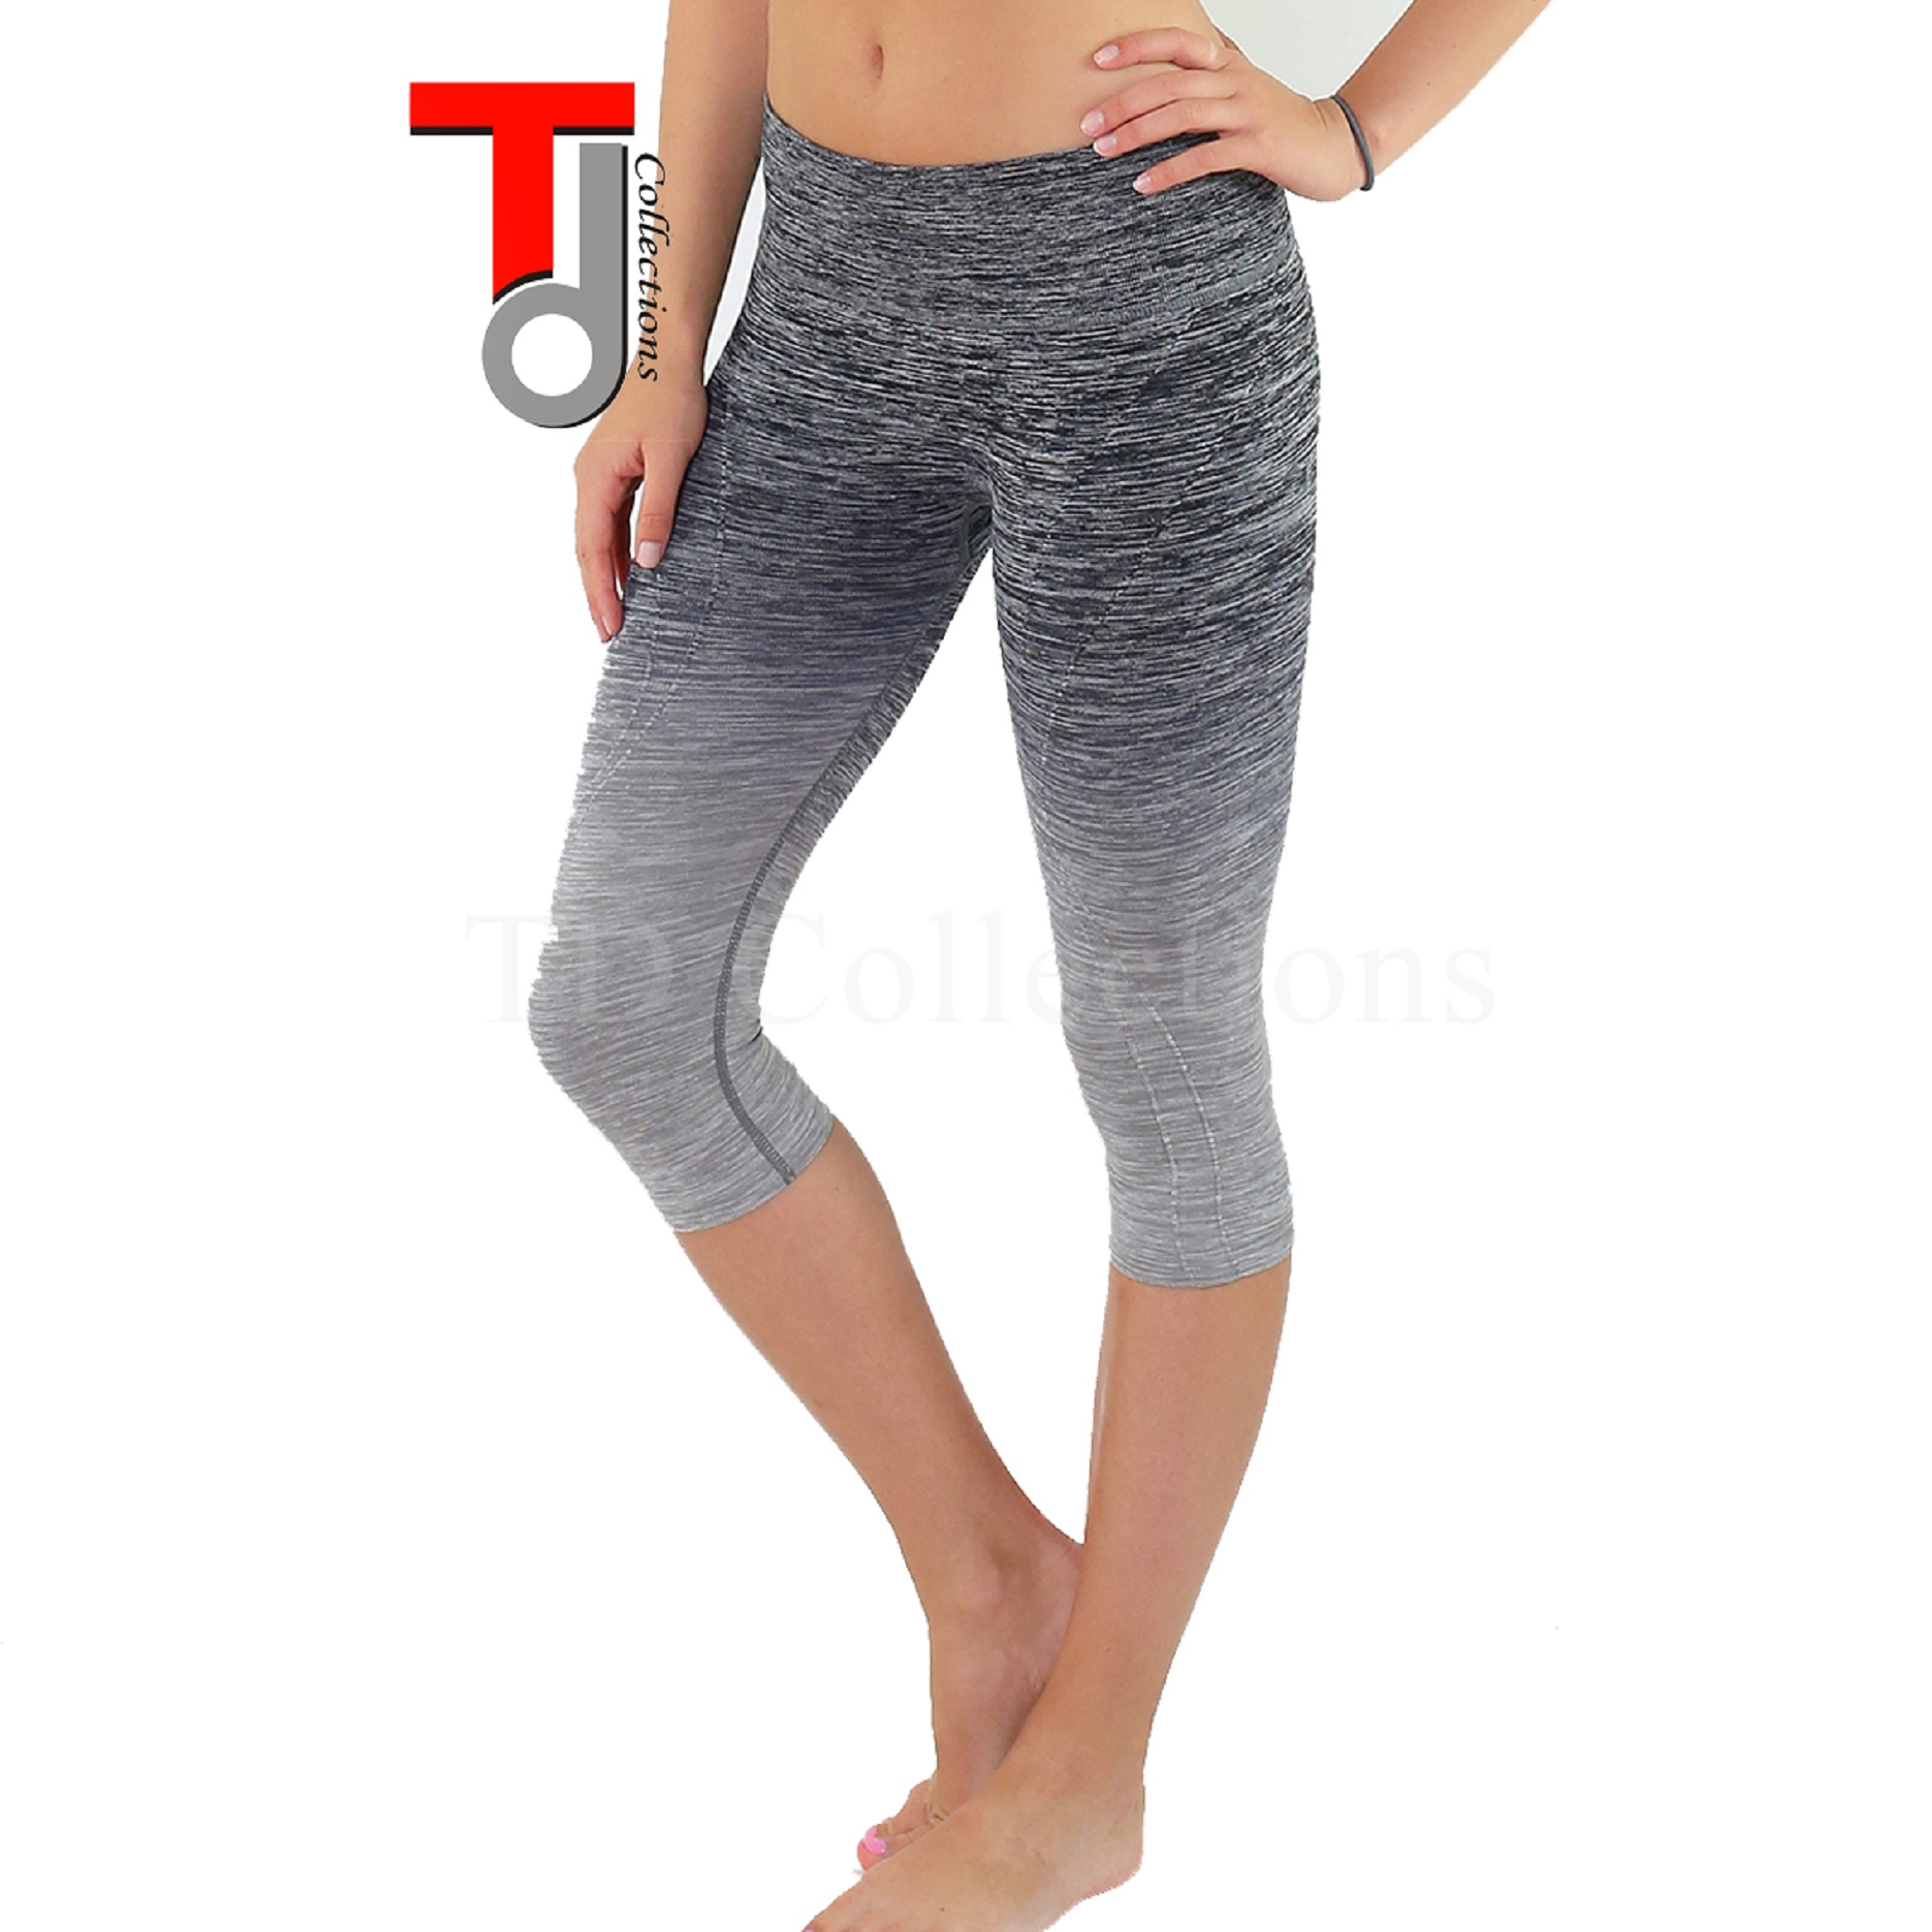 TD Collections Three-quarter Tights Capri Yoga Sport Workout Leggings Pants